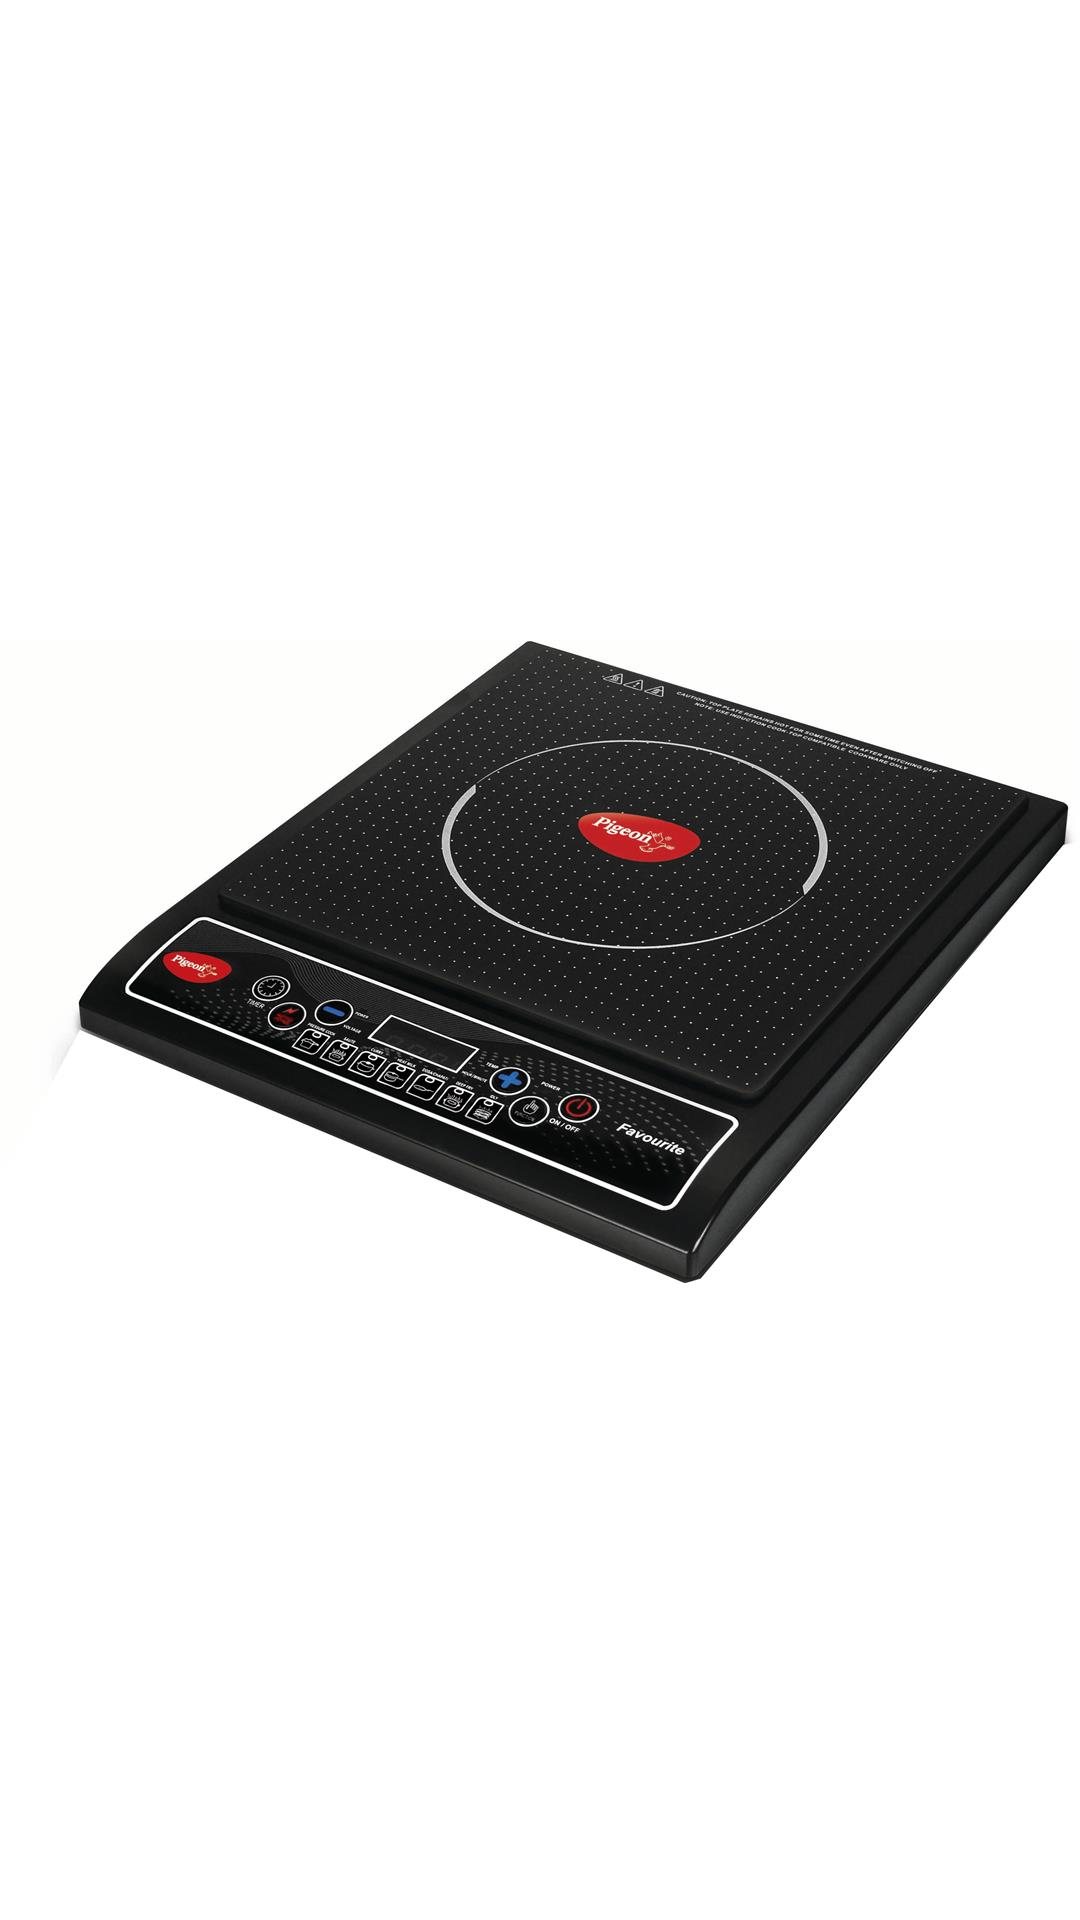 Pigeon Favourite IC 1800 W Induction Cooktop (Black)